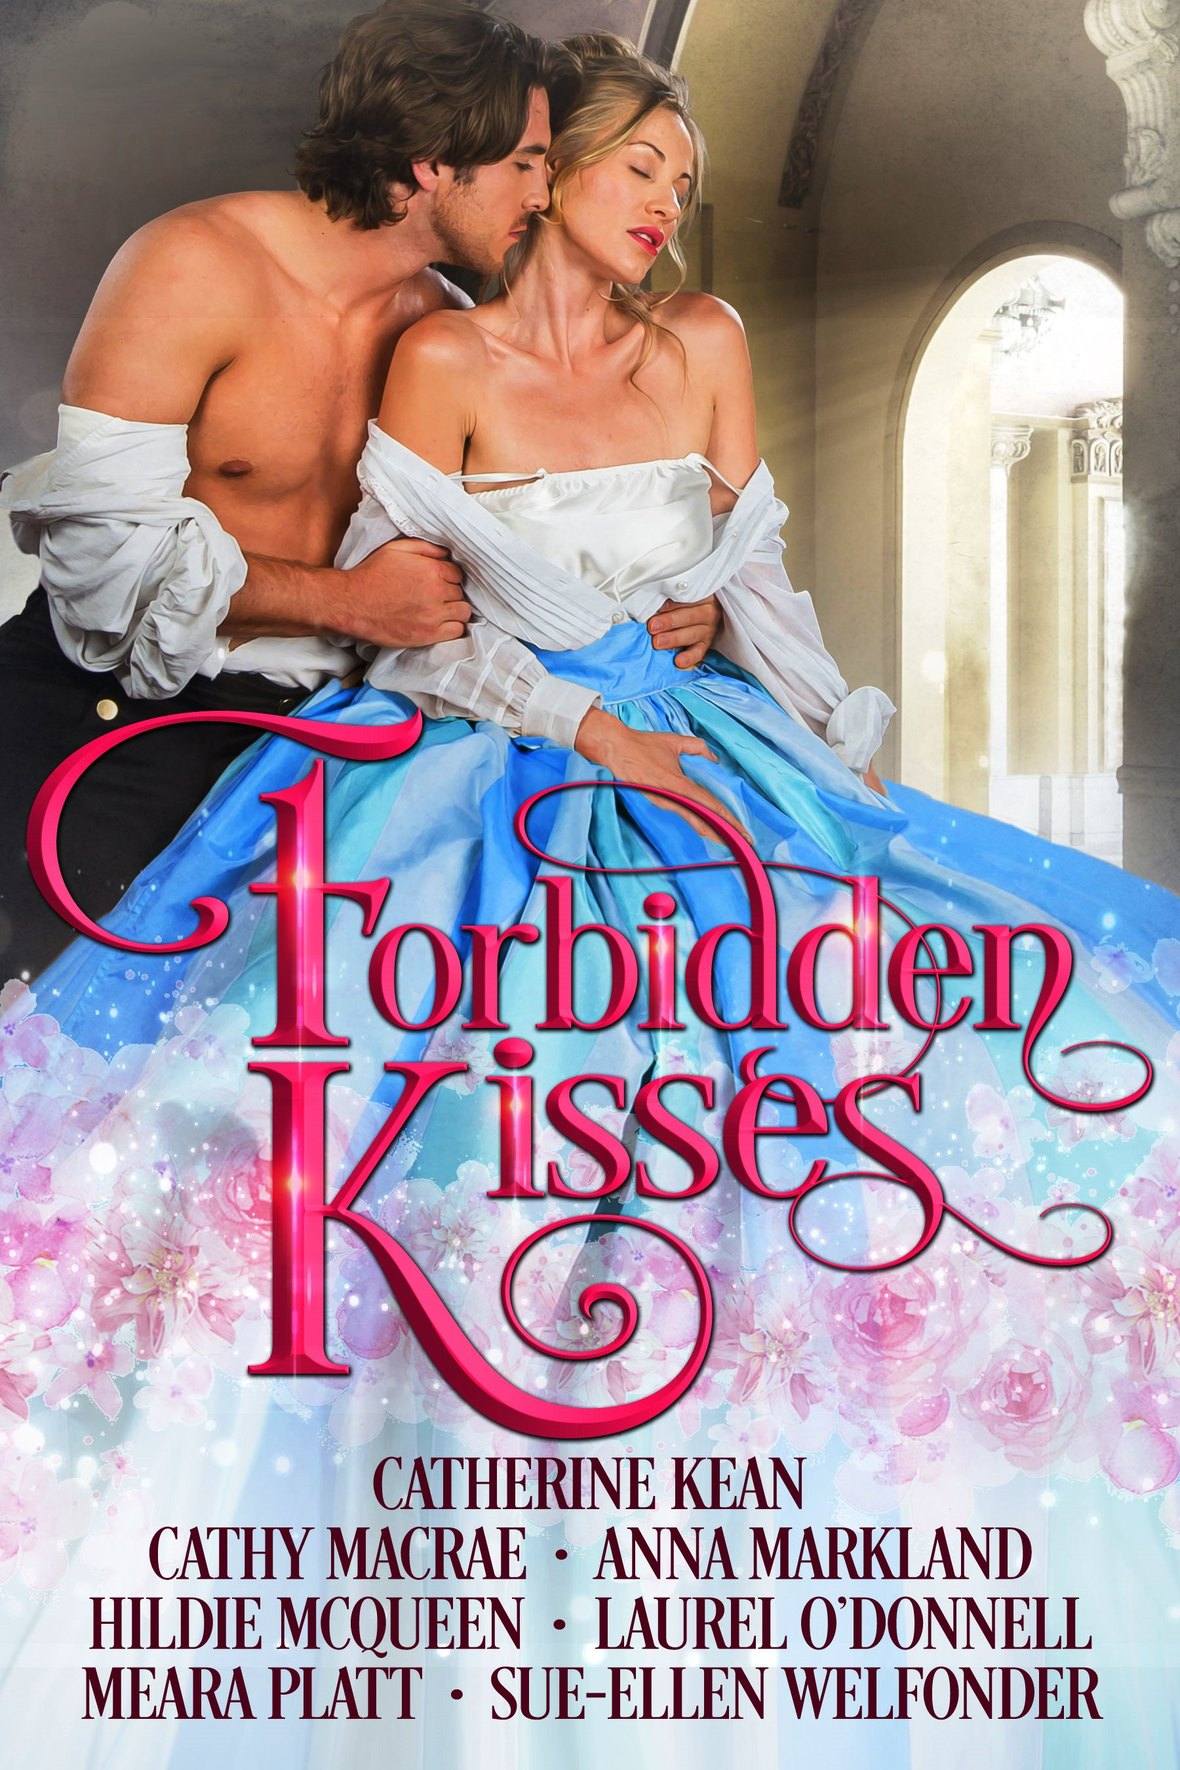 FORBIDDEN KISSES FB Full Cover Boxset-Cover1